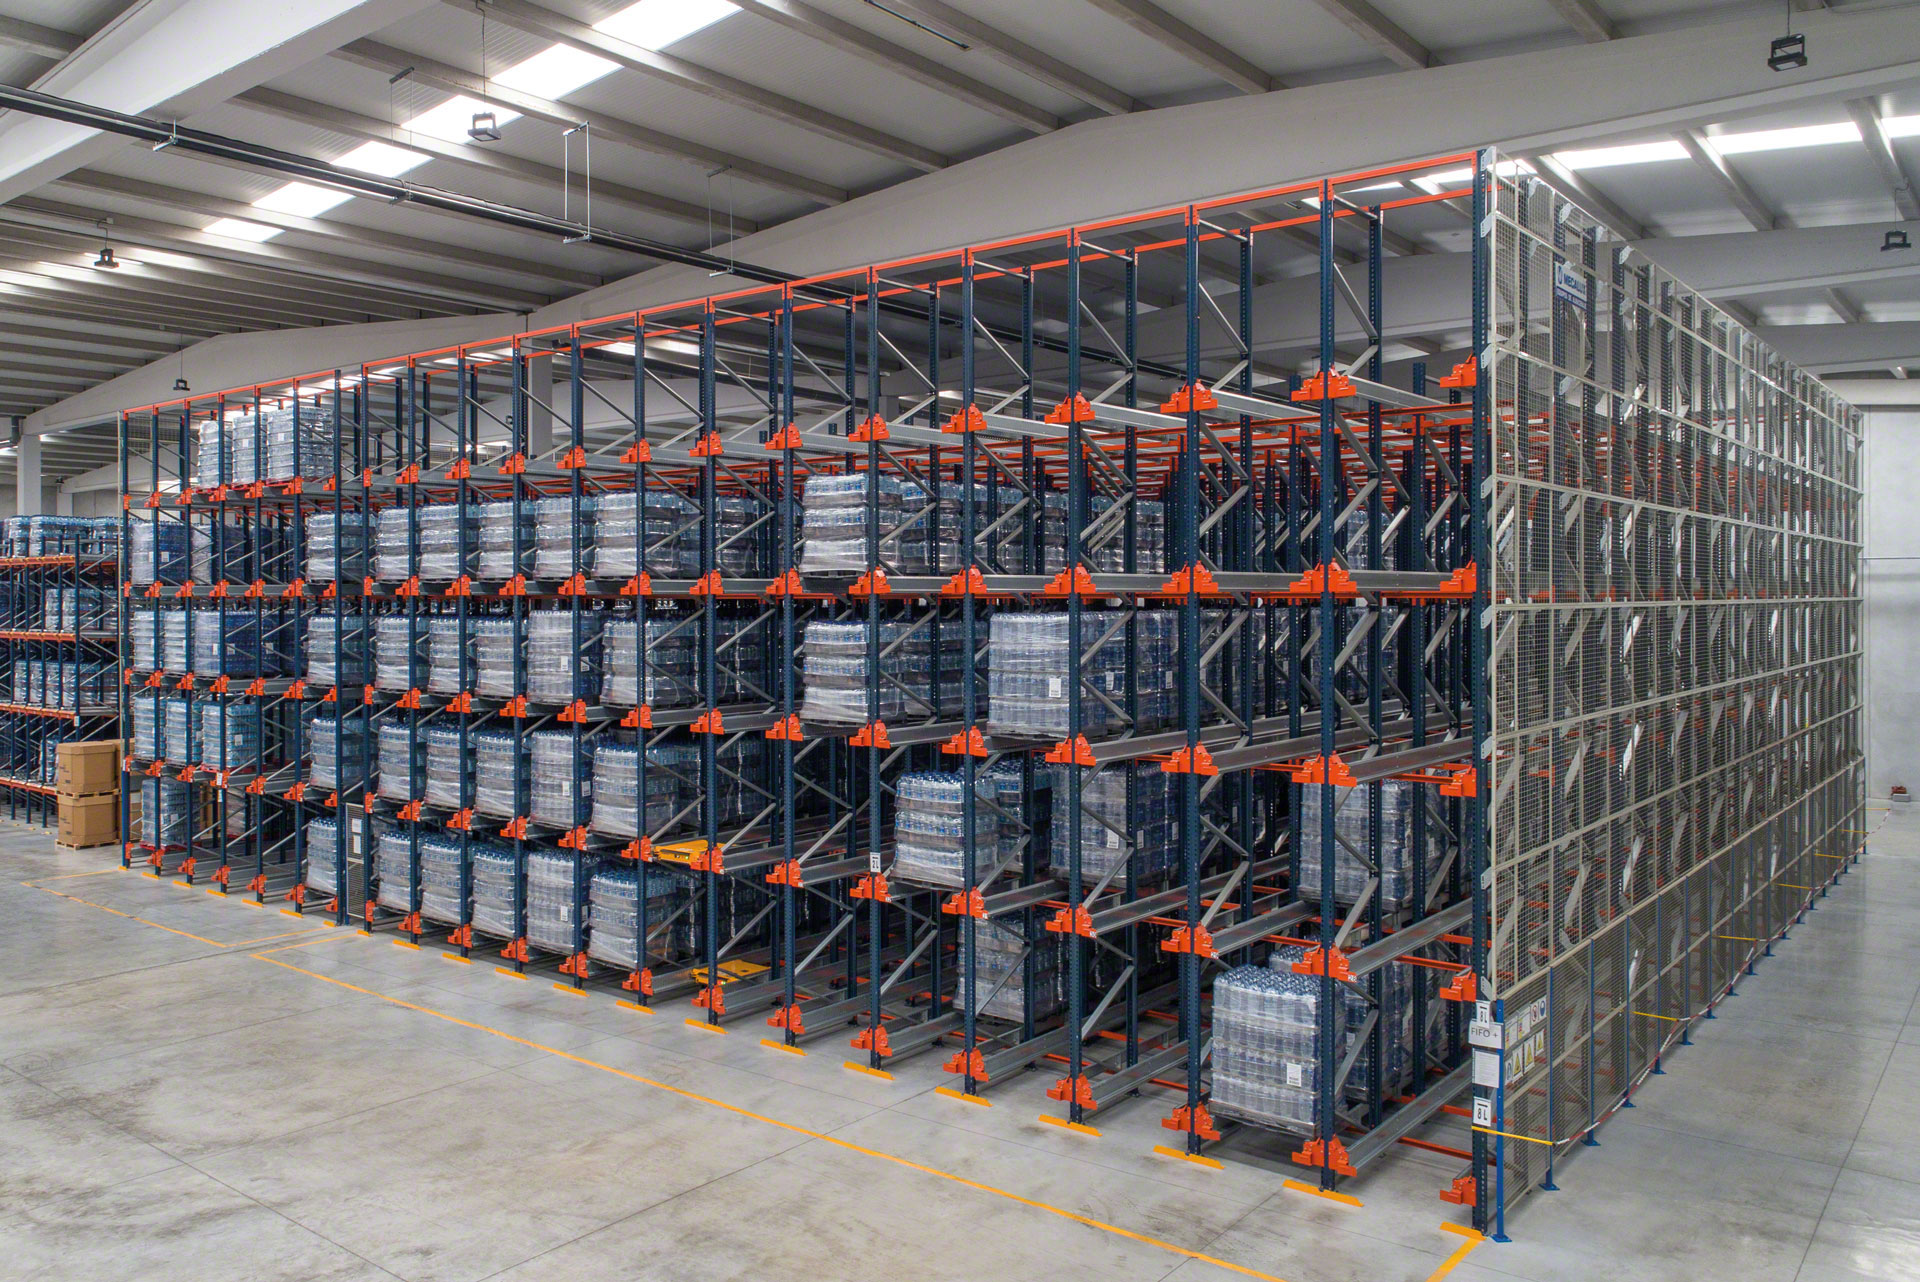 Handling equipment places the Pallet Shuttle in the storage channels